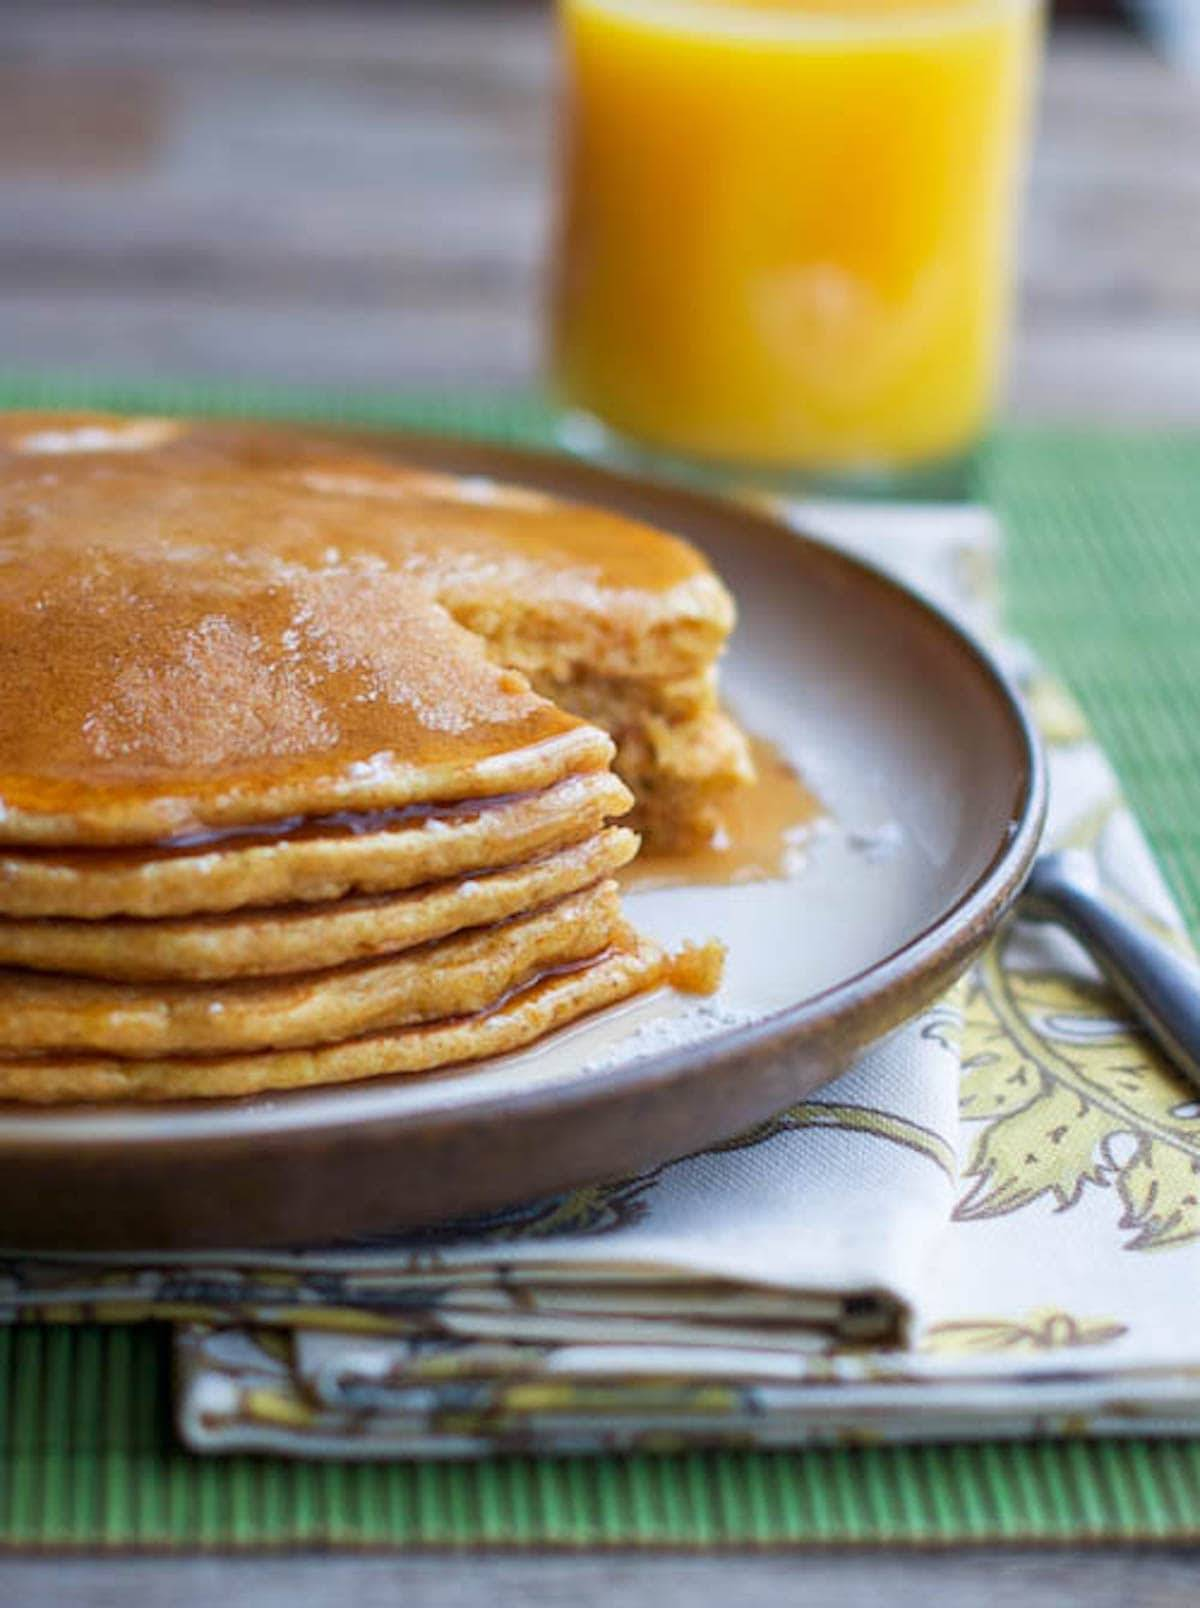 Pancakes with maple syrup and a glass of orange juice.